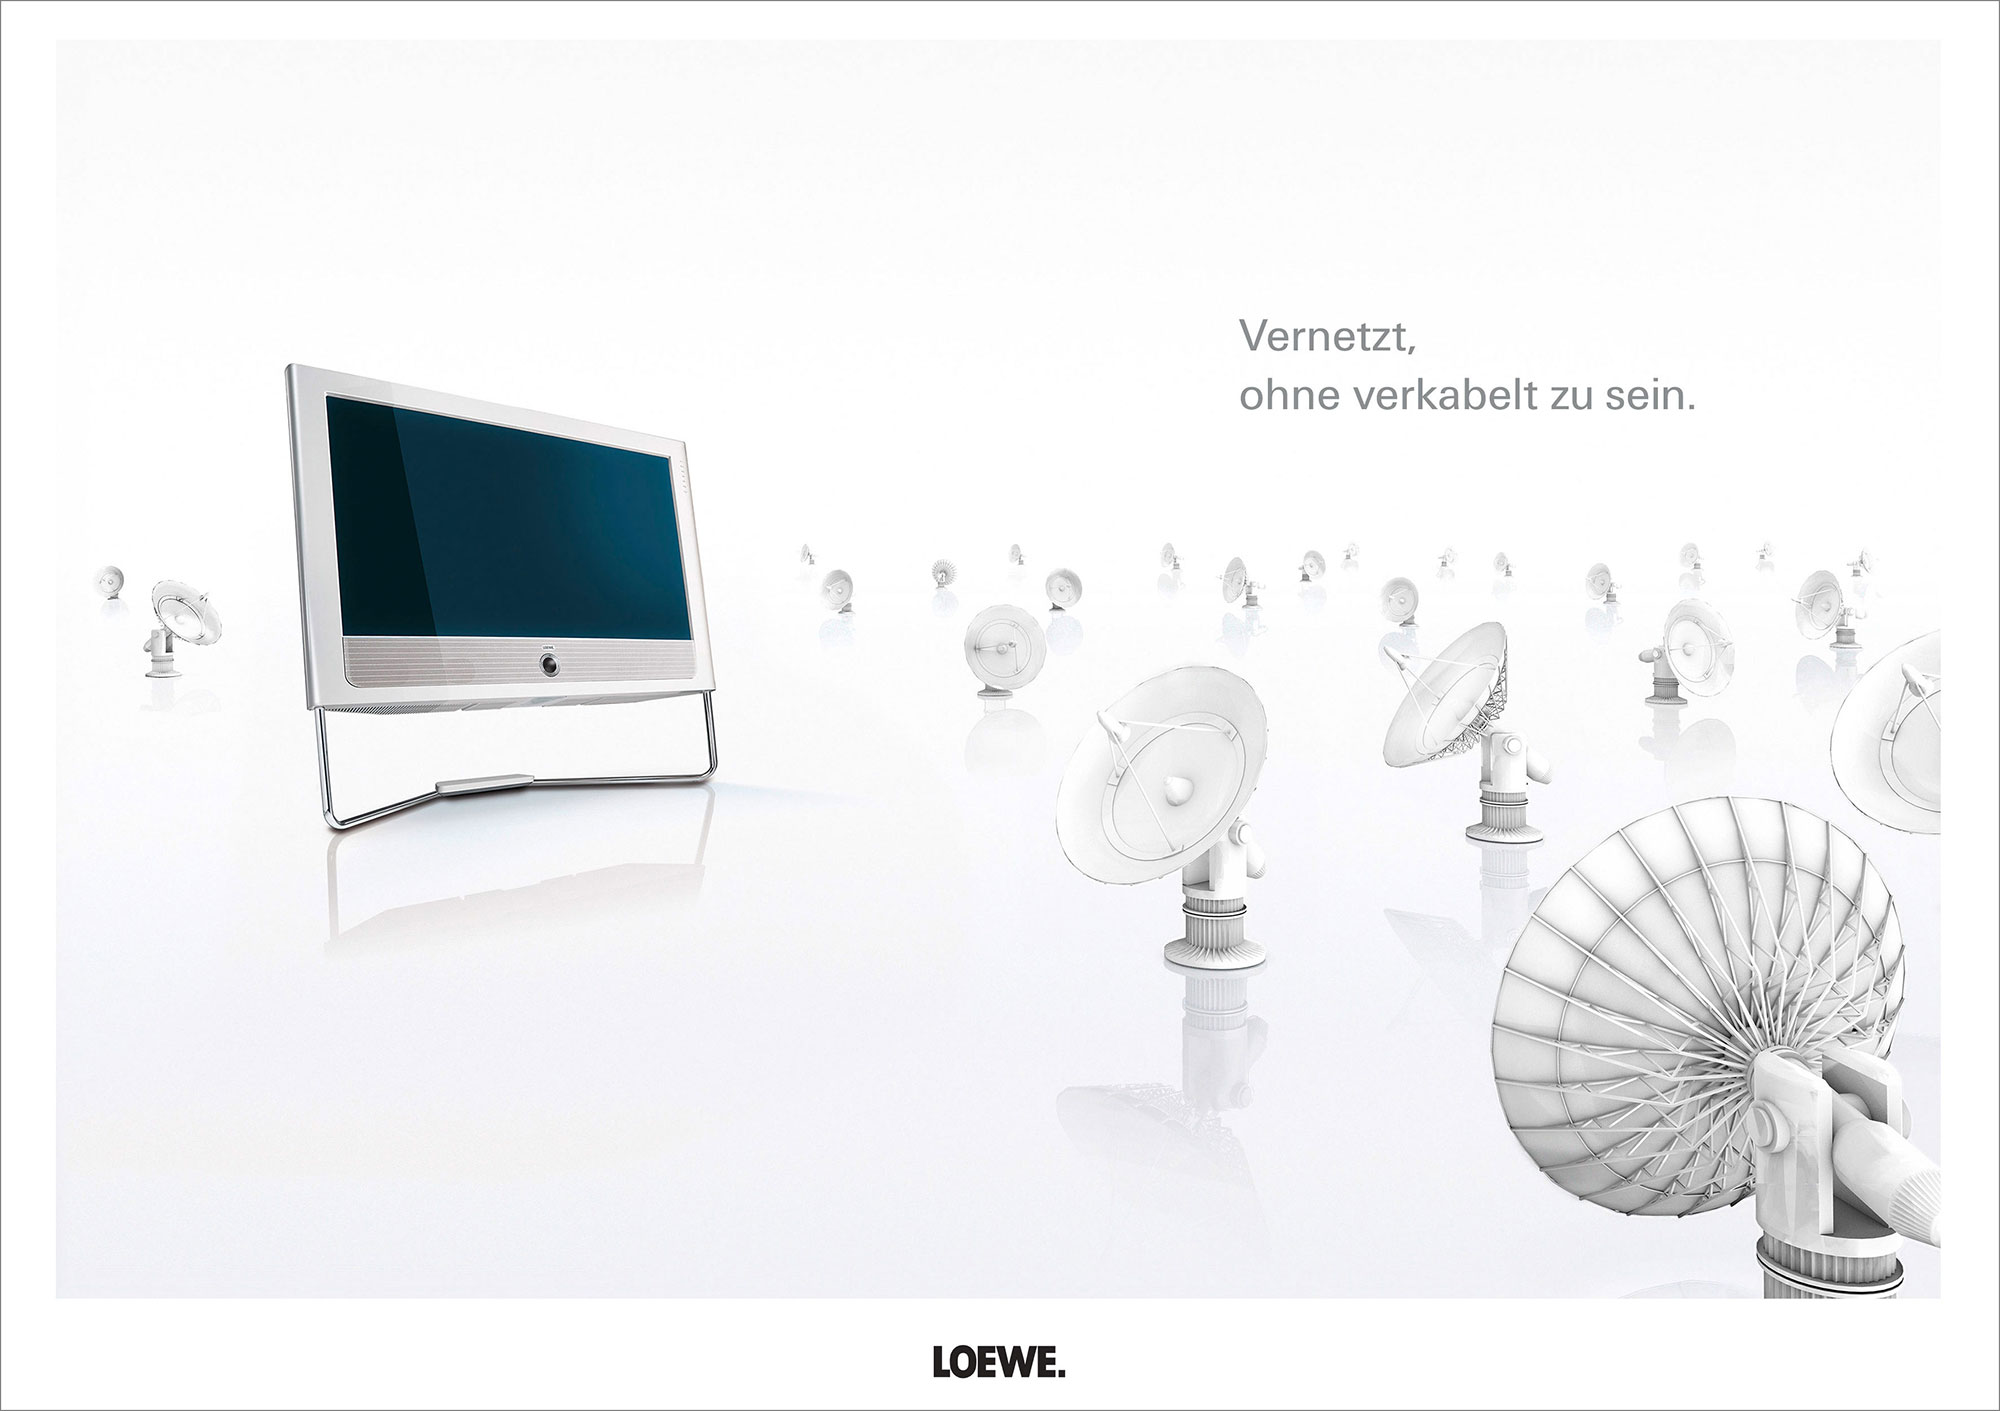 Advertising CGI Rendering 3d Loewe TV Highkey Weiss Radioteleskope vernetzt verkabelt Idris Kolodziej